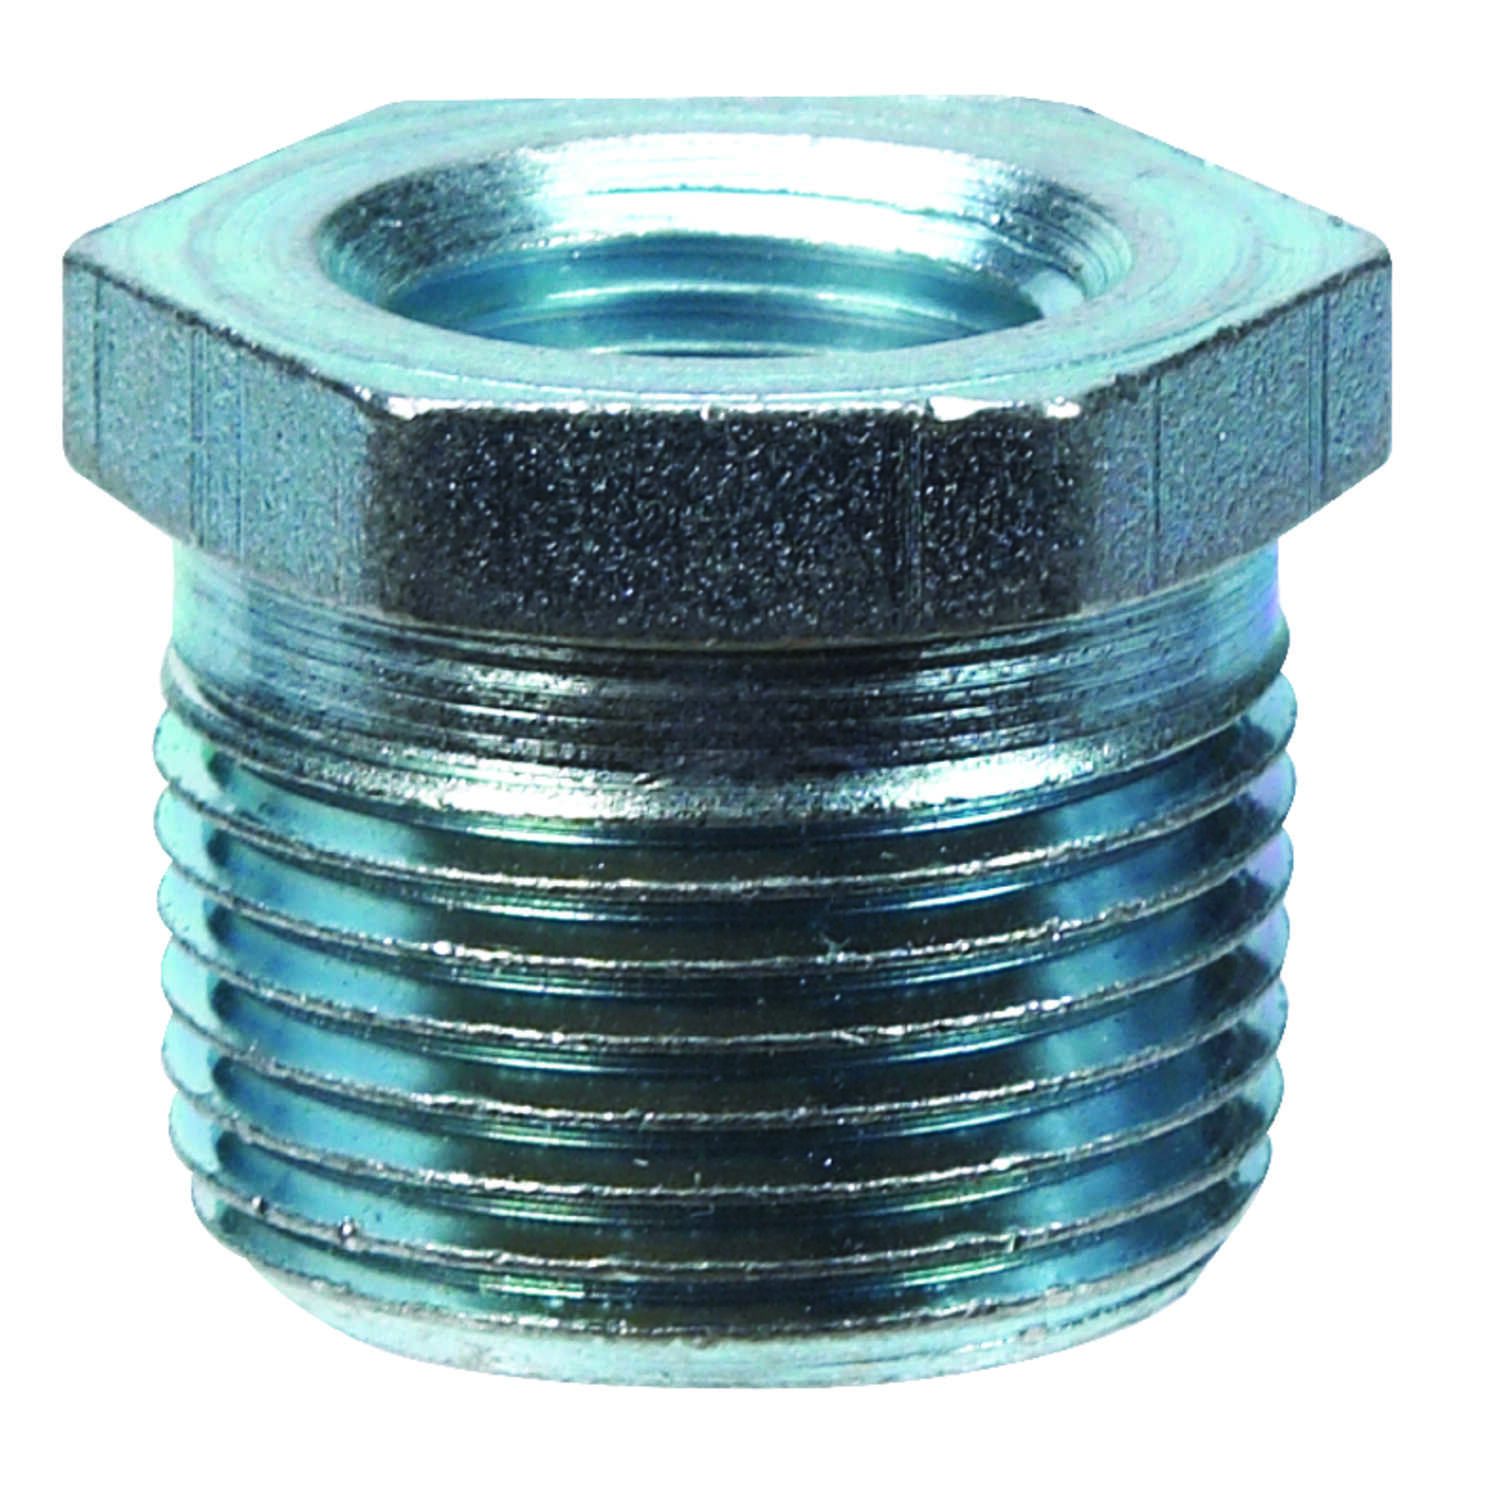 Billco  1/2 in. MPT  1/4 in. Dia. MPT  Galvanized Steel  Hex Bushing